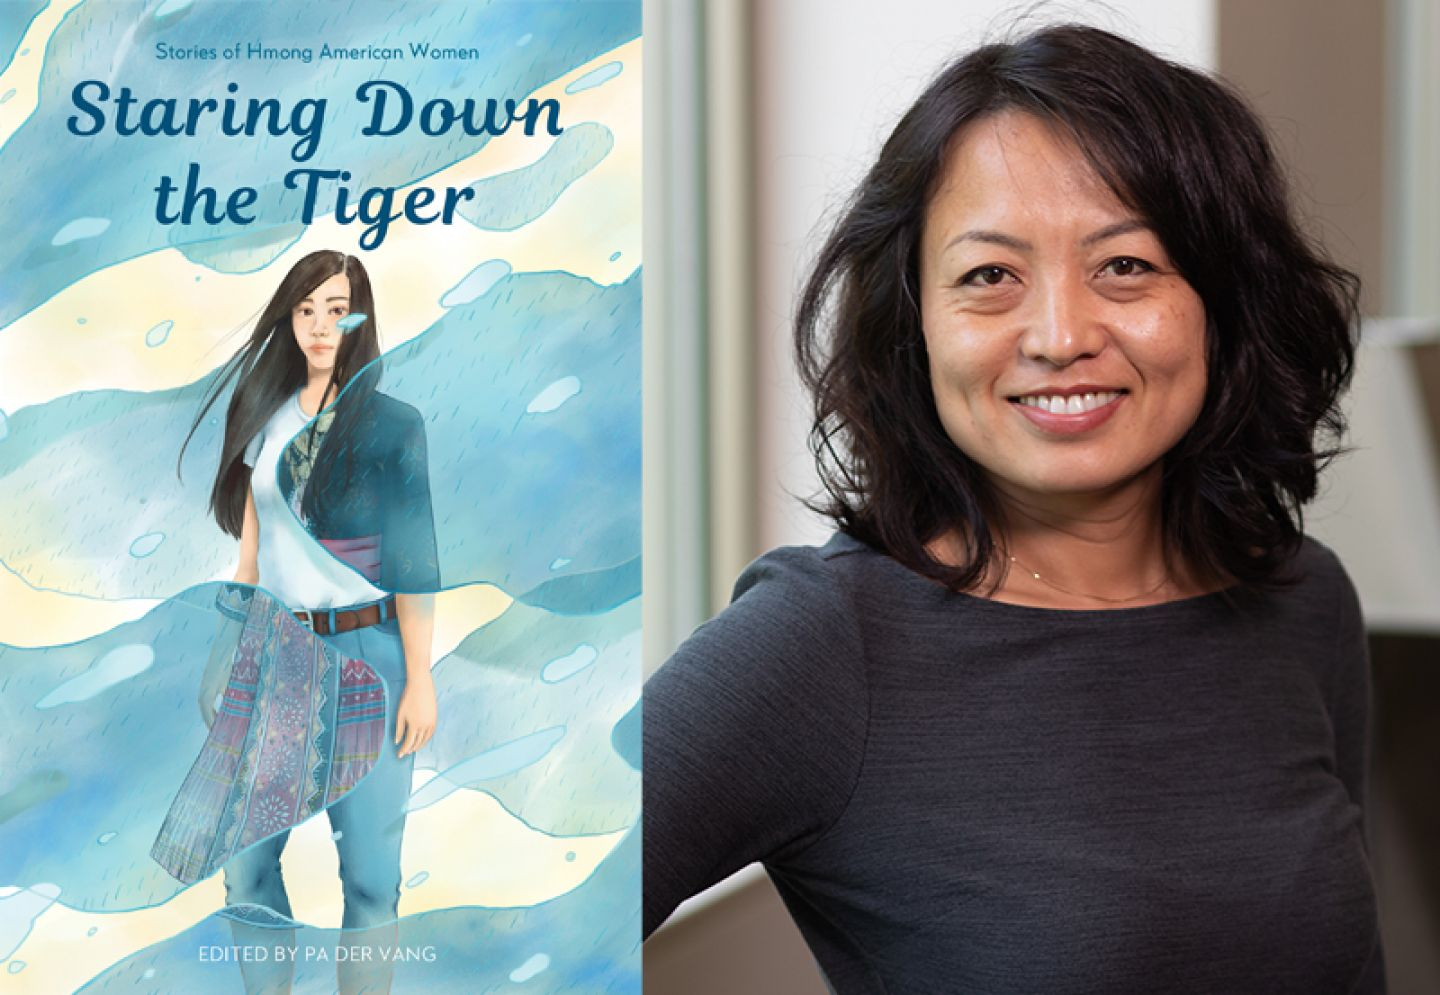 Book cover of Staring Down the Tiger and editor Pa Der Vang